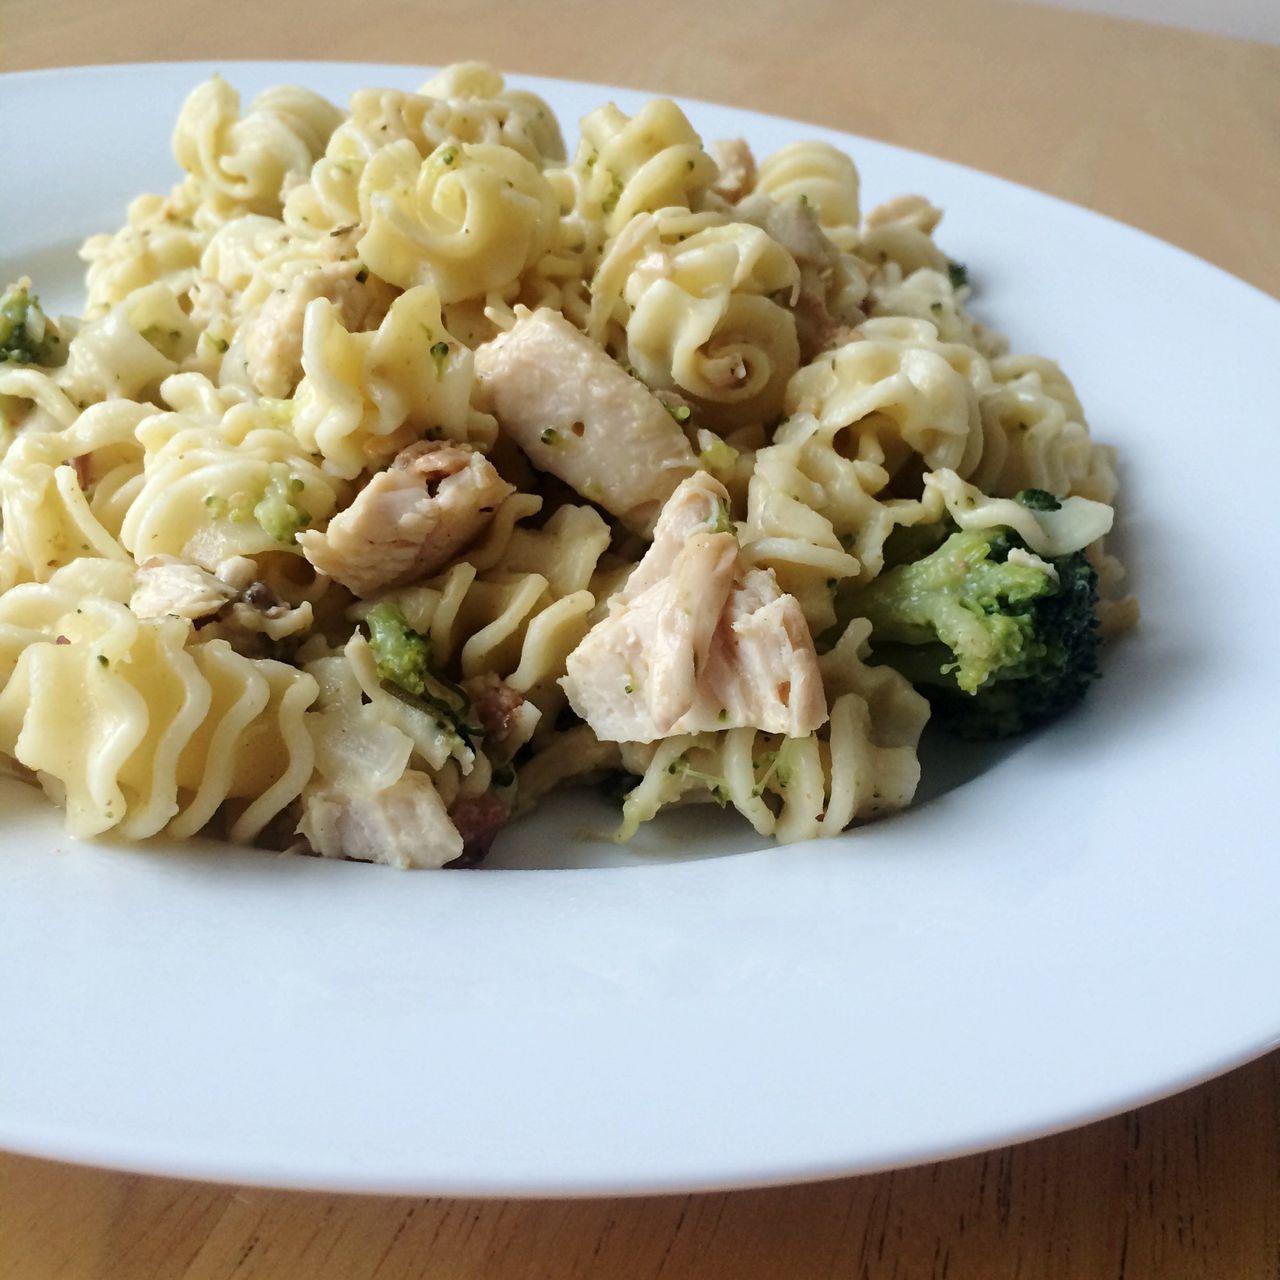 Close-Up Of Chicken Meat And Vegetable Pasta On Plate